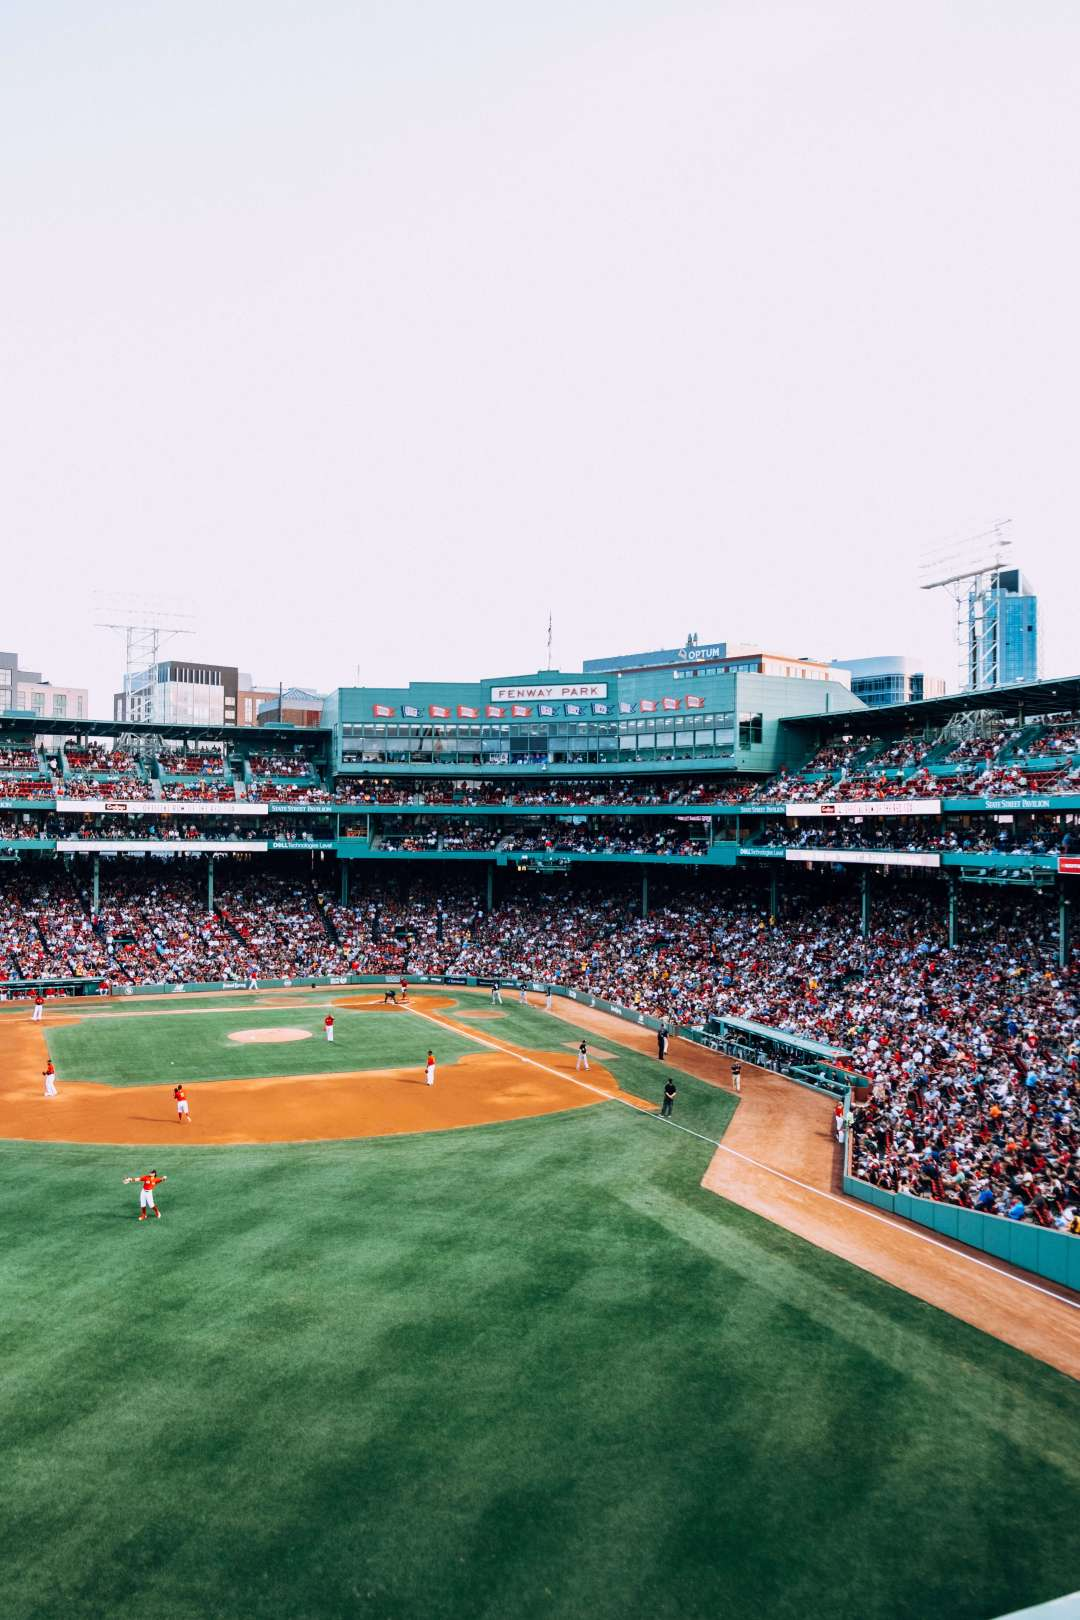 Veiw for Fenway Park Green Monster Seats